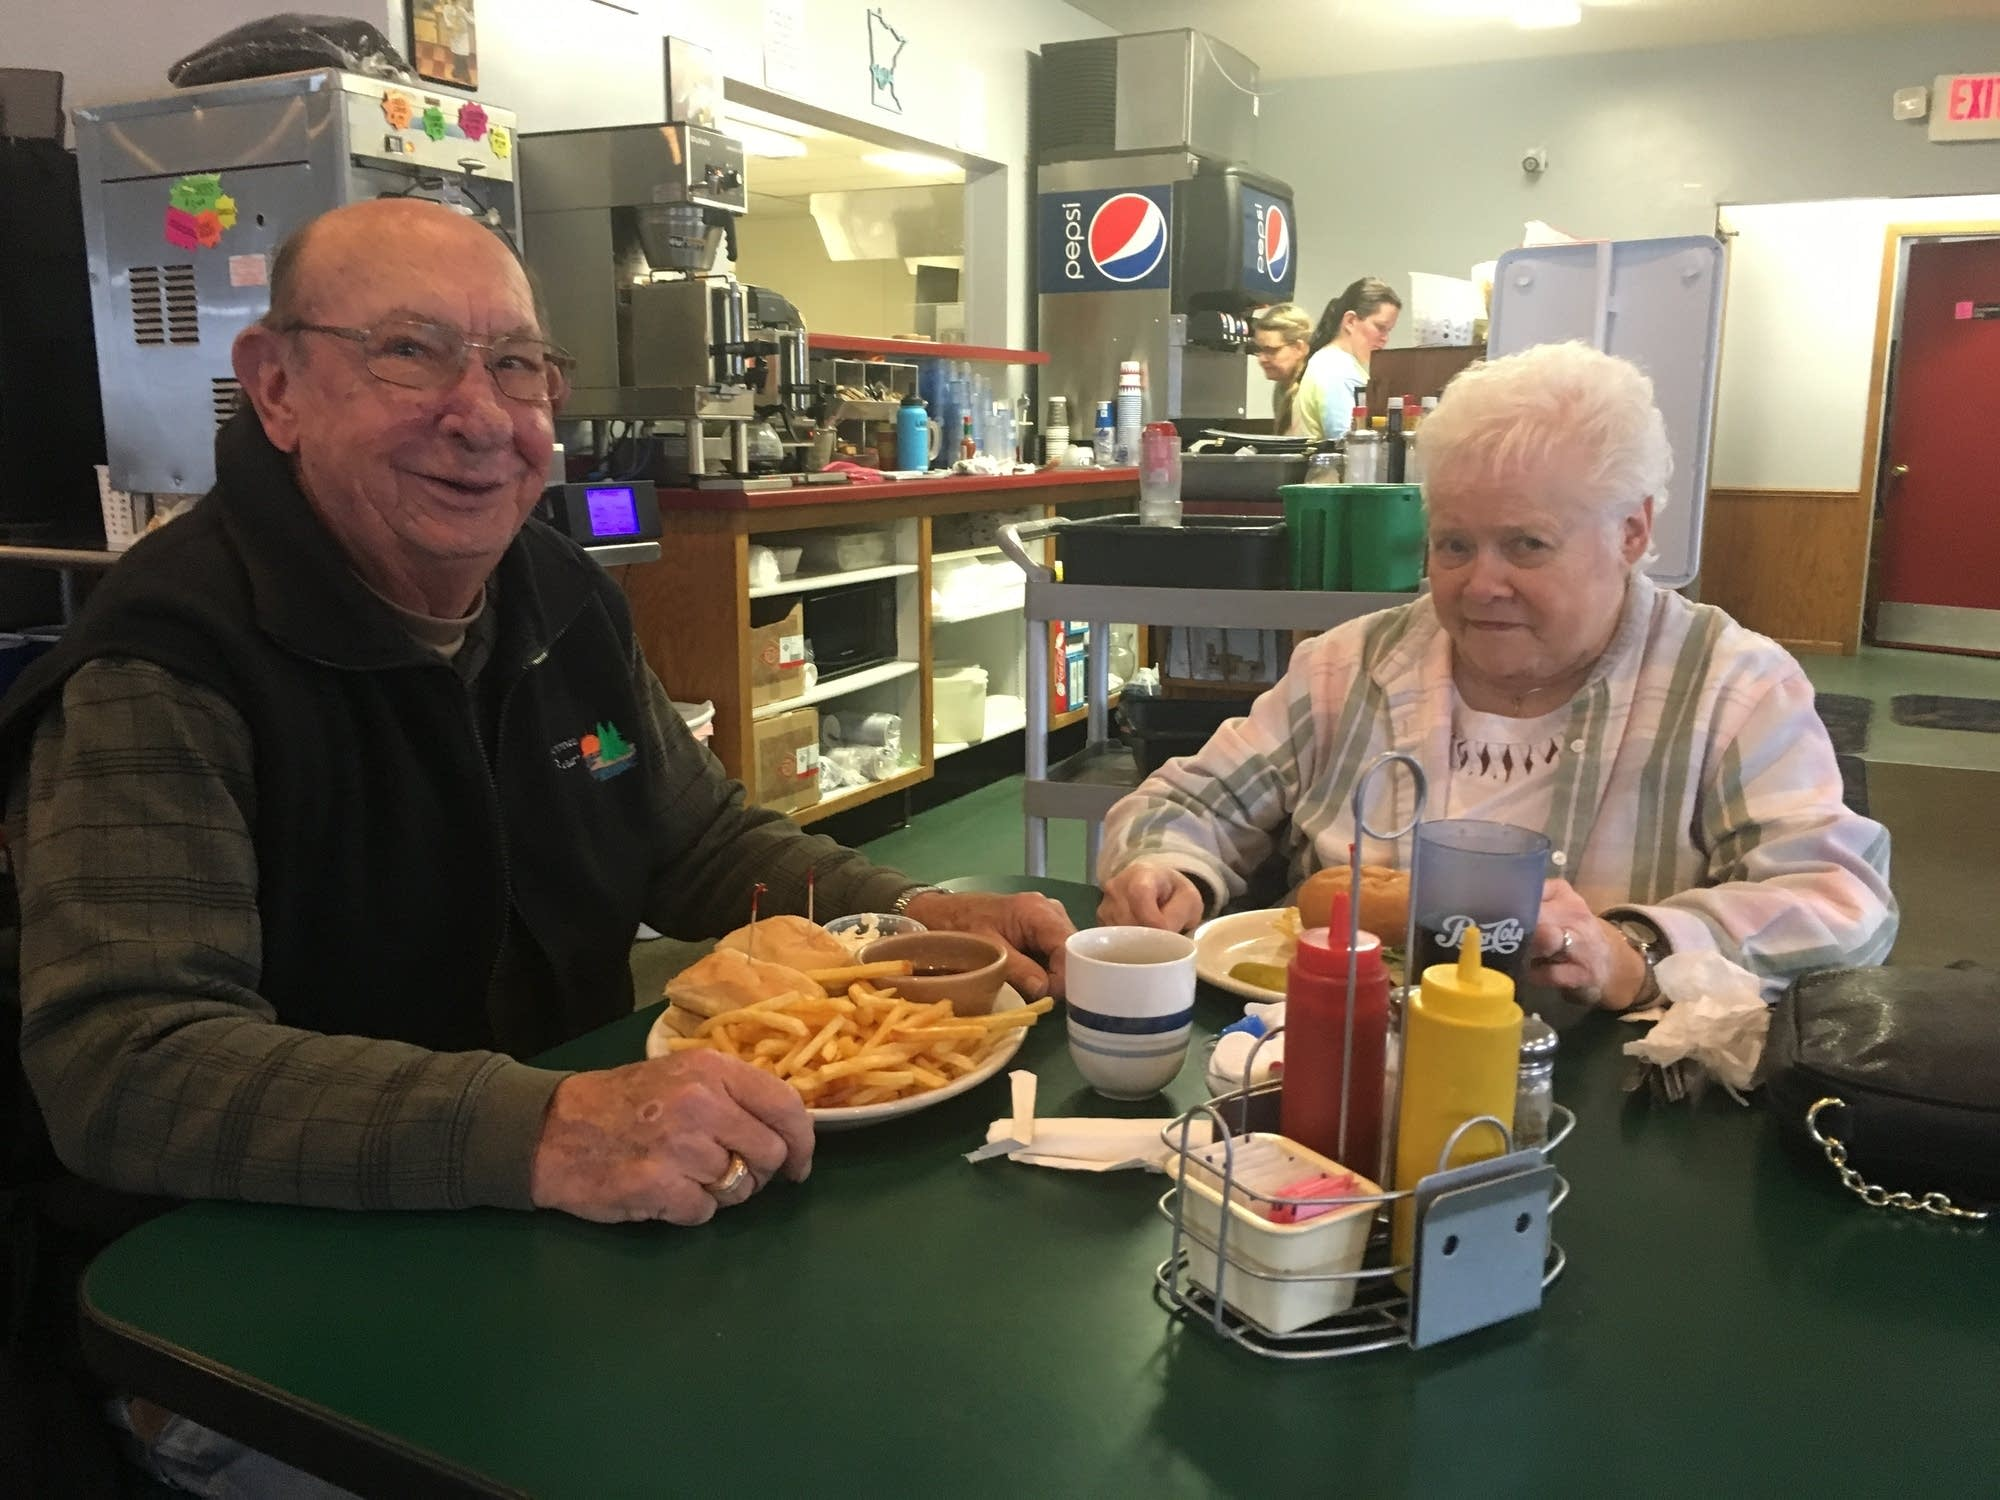 Ron and Val Osladil eat lunch at Crazy Mary's Cafe